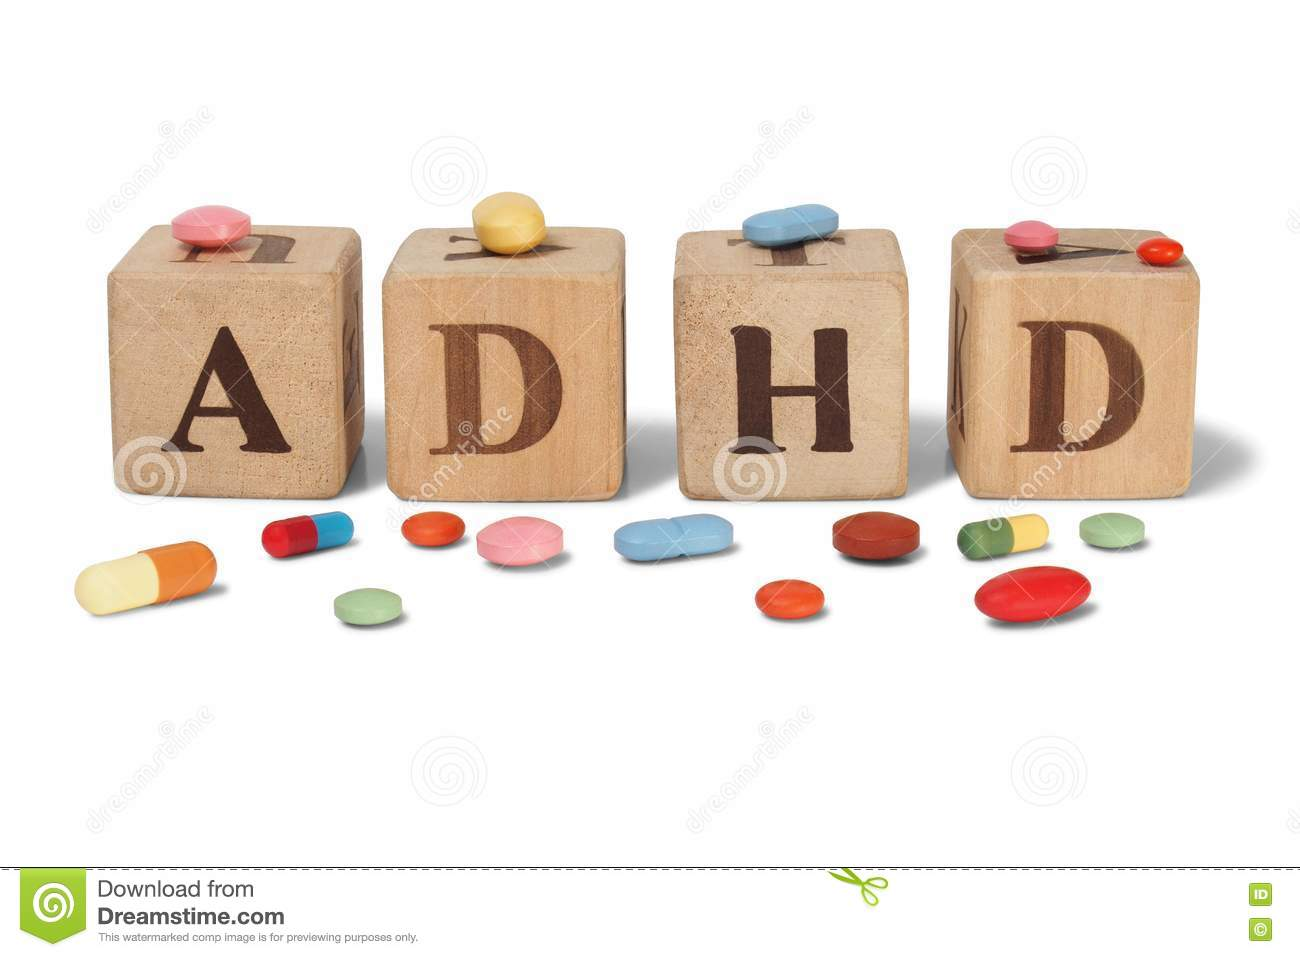 Advise you adult attention deficit disorder medication really. All